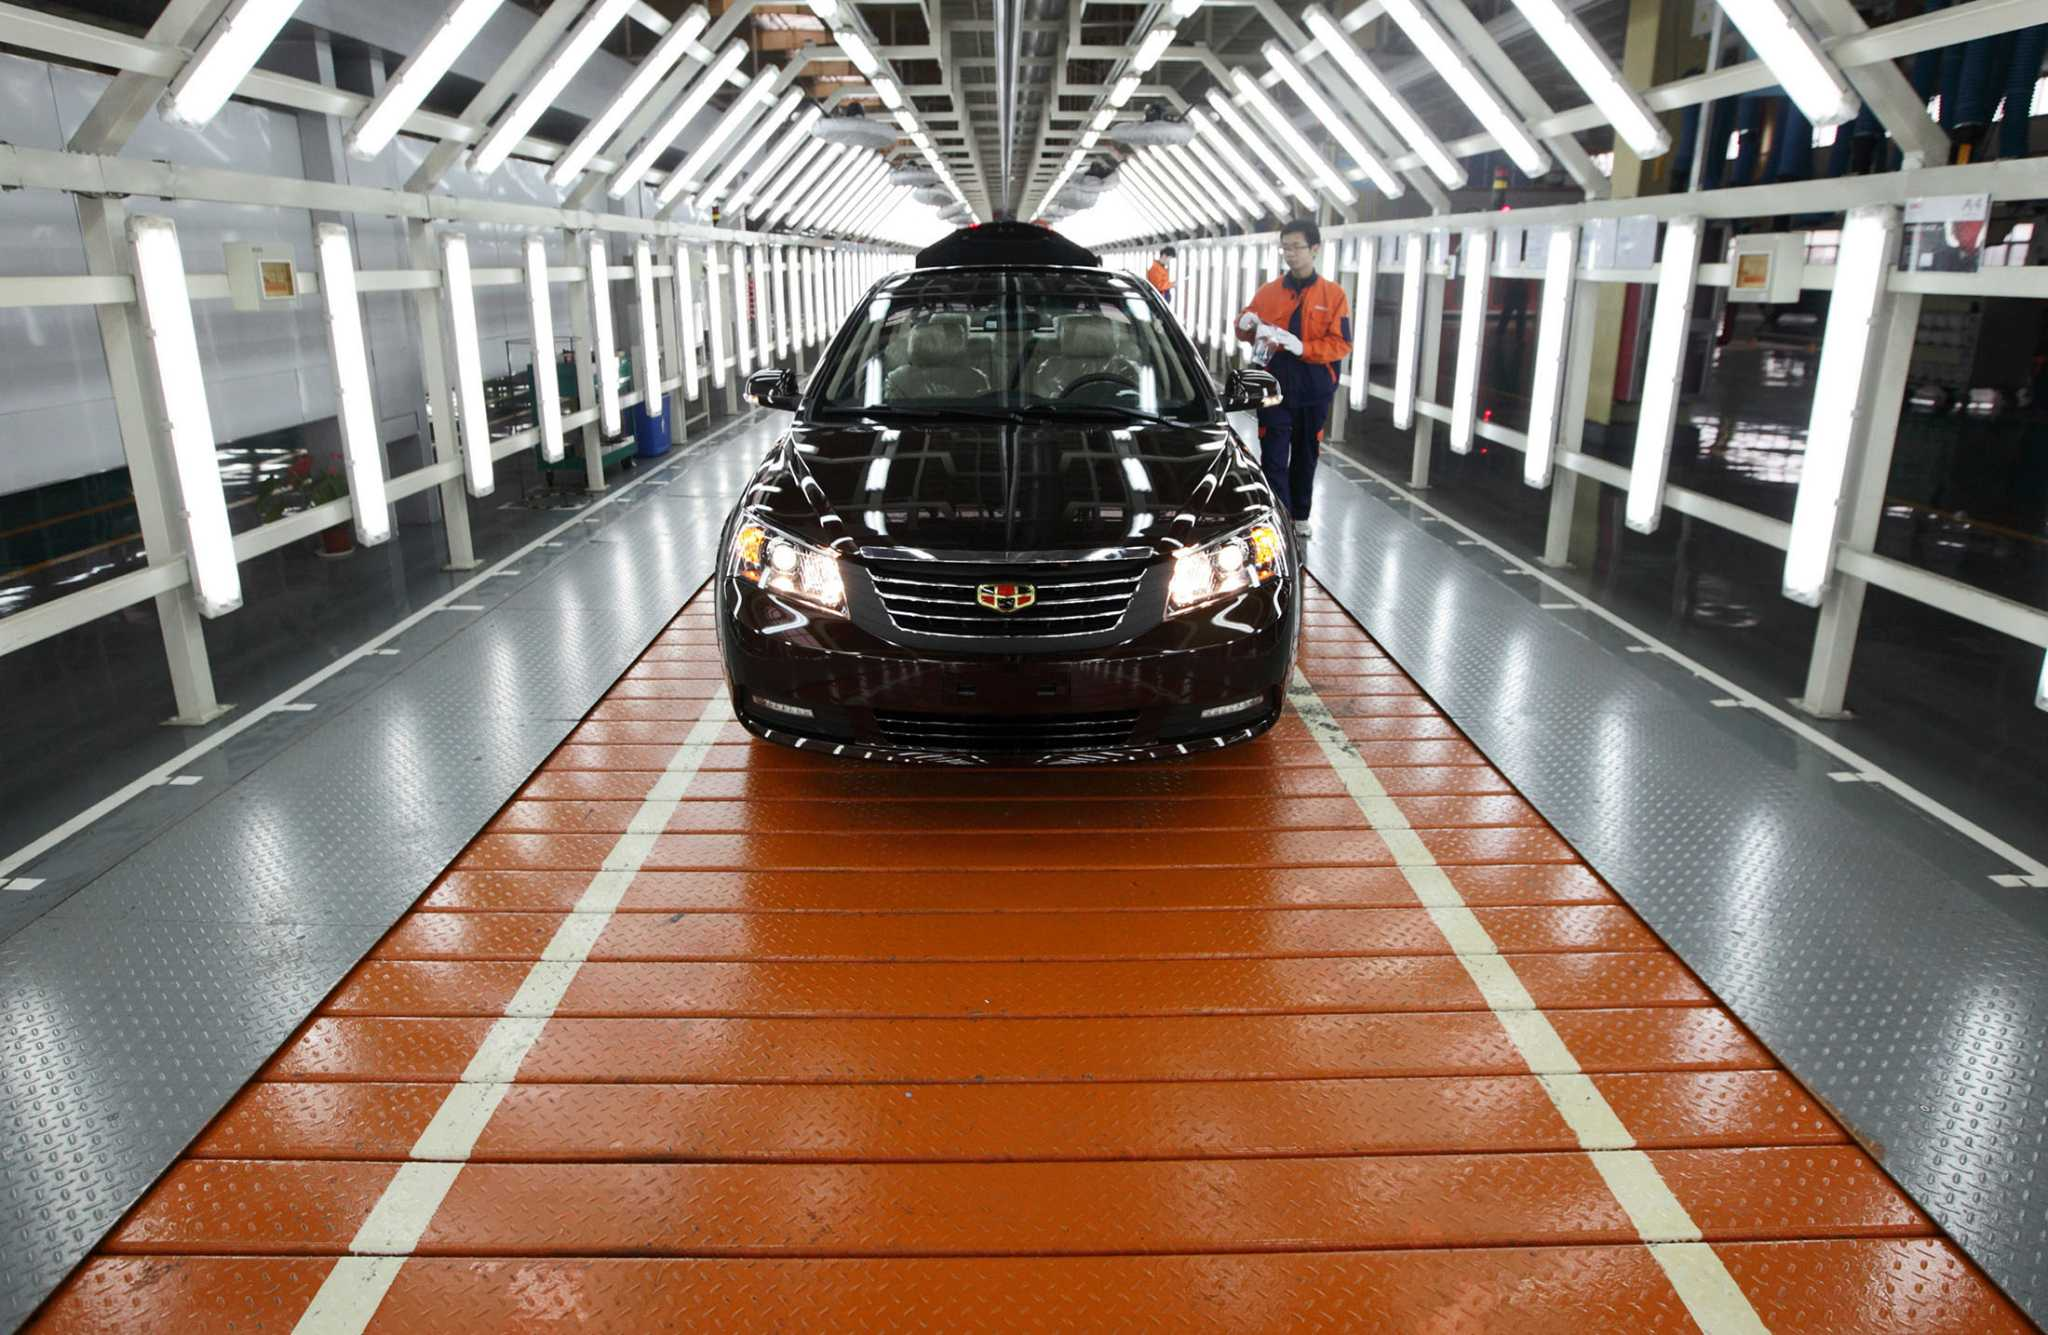 Tariffs may end Chinese car imports before they really start SFGate